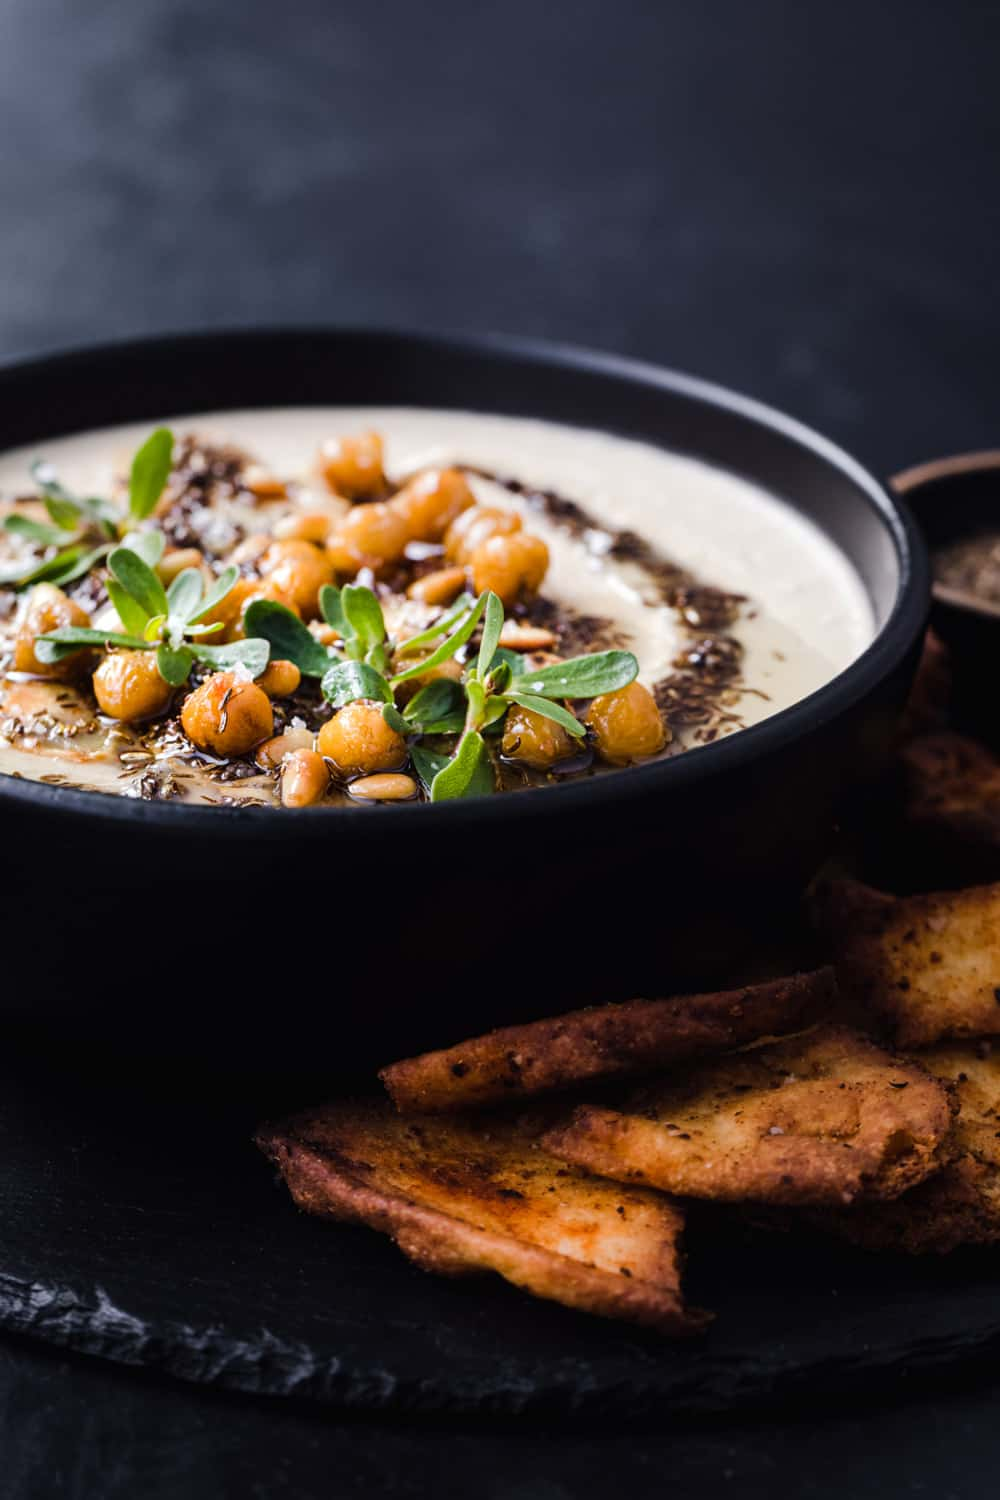 Side angle shot of finished hummus with tahini in a black bowl, served with crispy pita chips on a black slate.